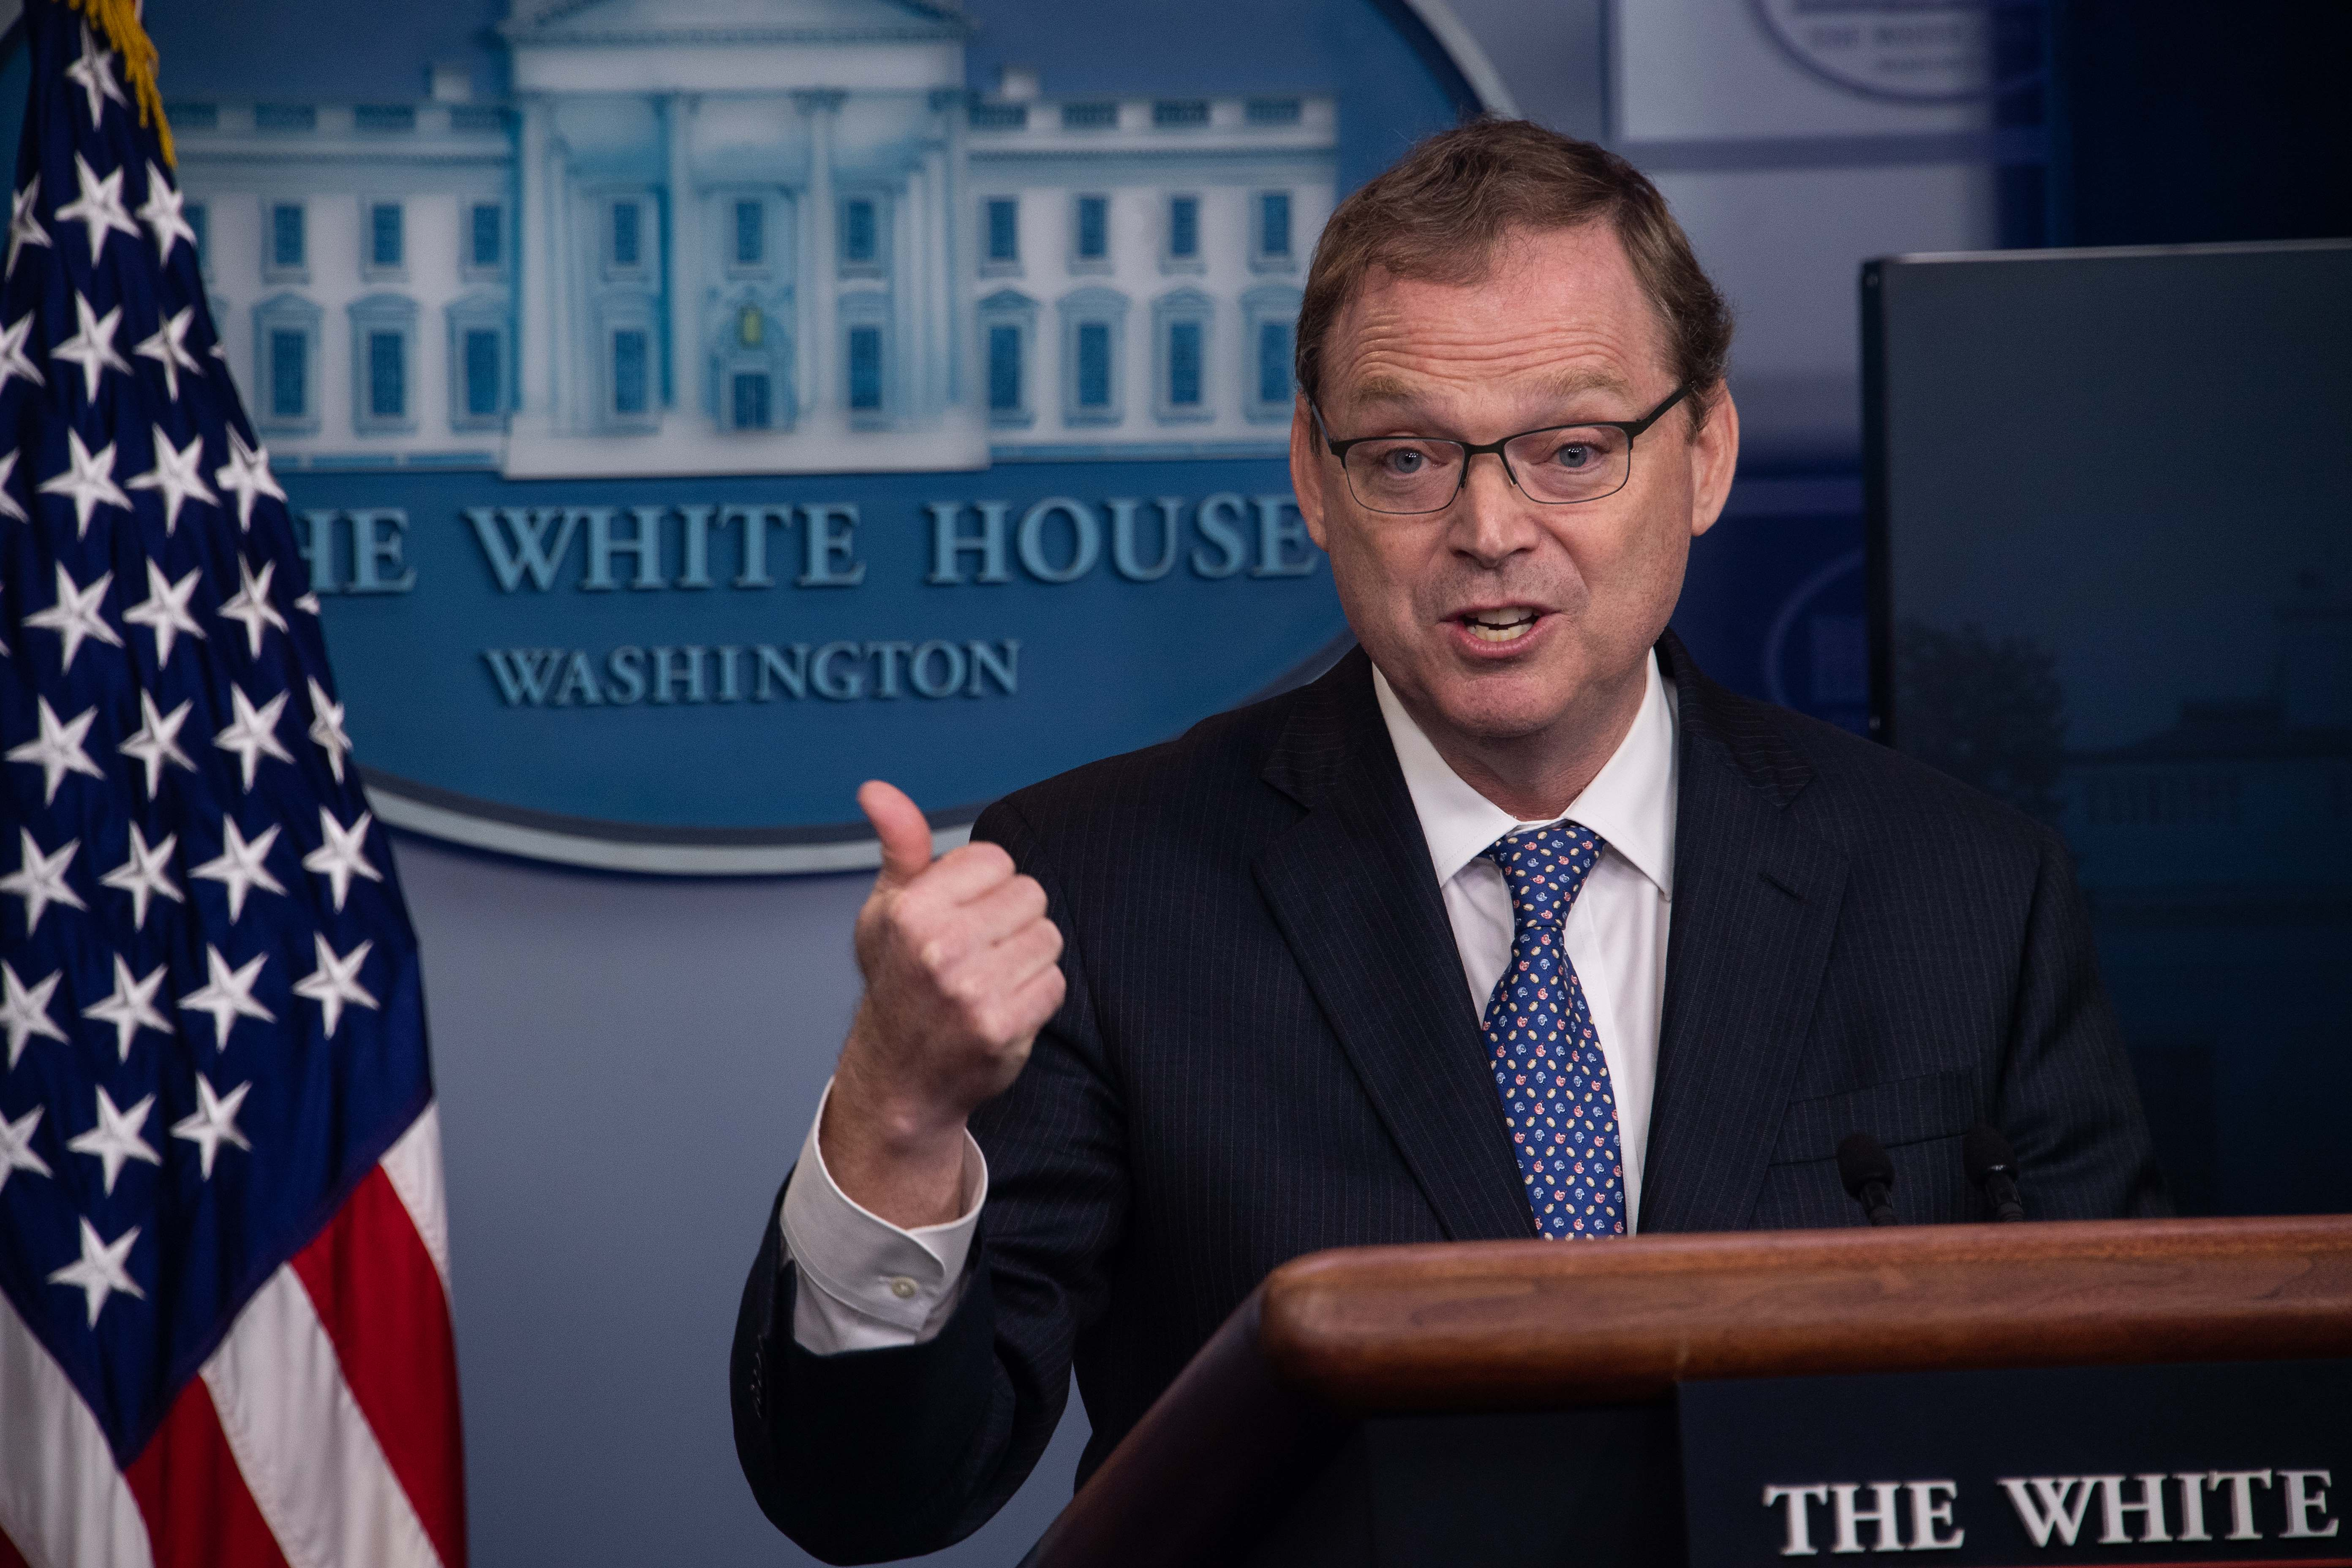 talkingpointsmemo.com - WH Economist Admits Economic Strain After Saying Fed Workers 'Better Off